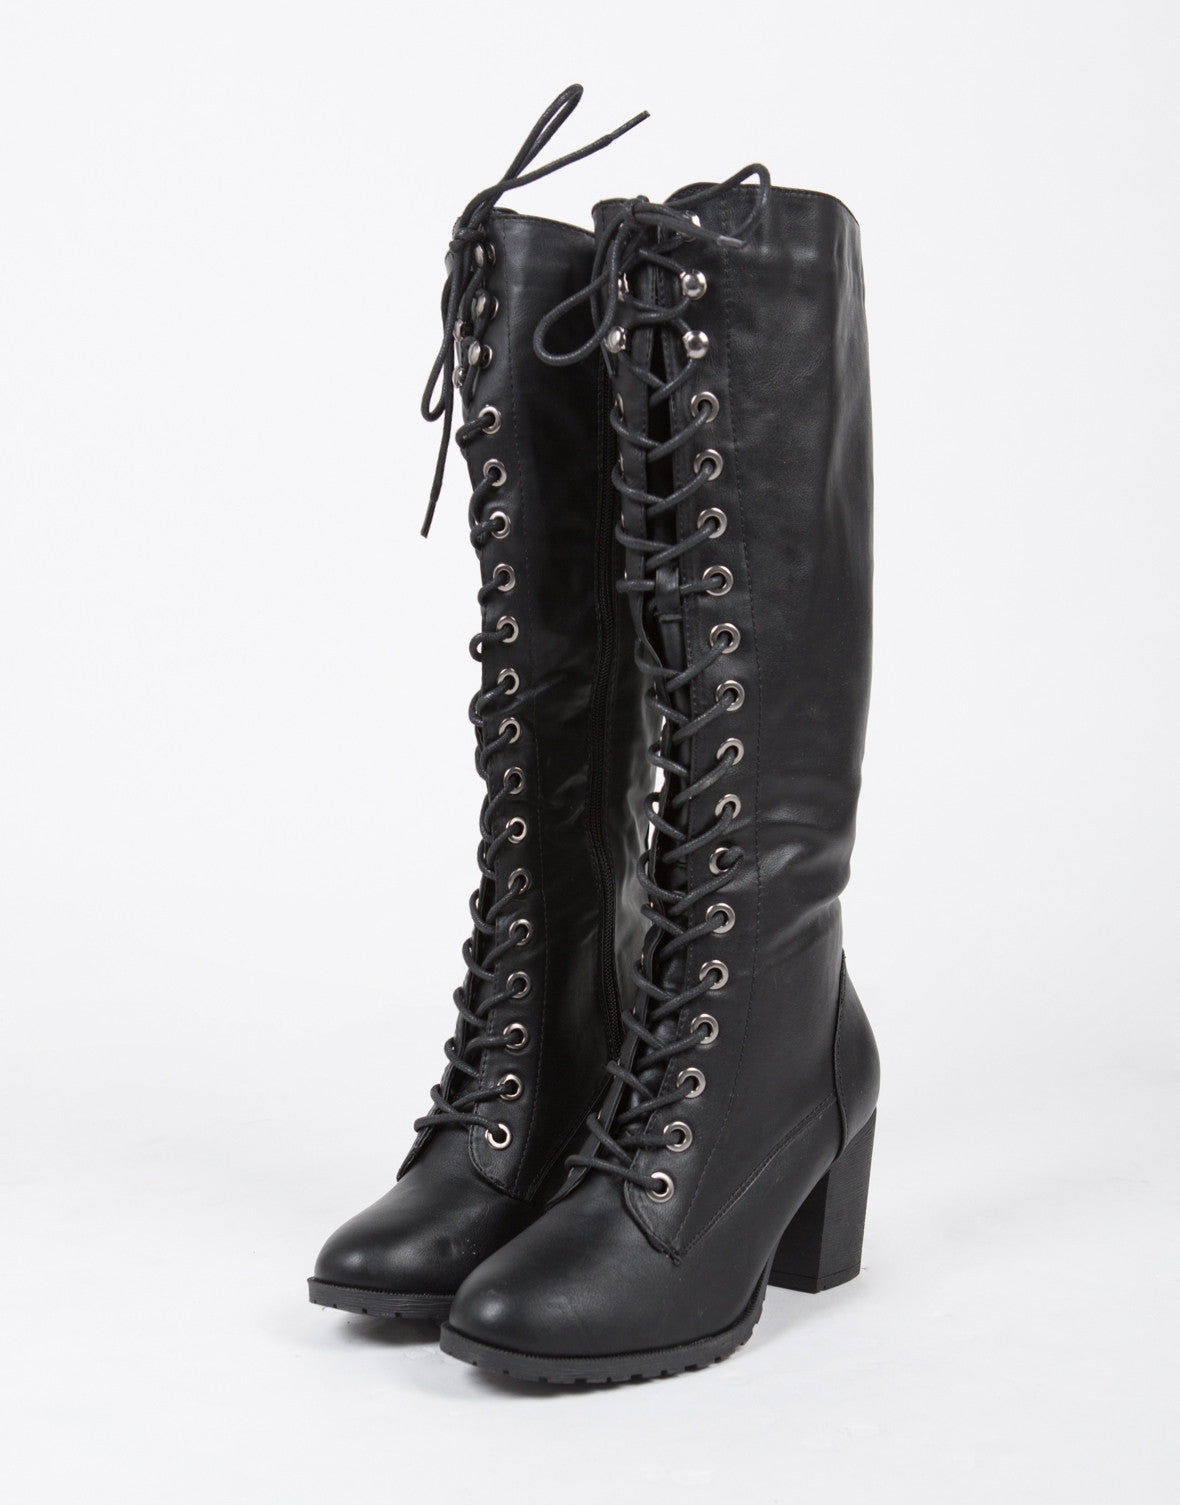 Tall Lace Up Boots - Black Boots - Knee High Boots - Chunky Boots ...